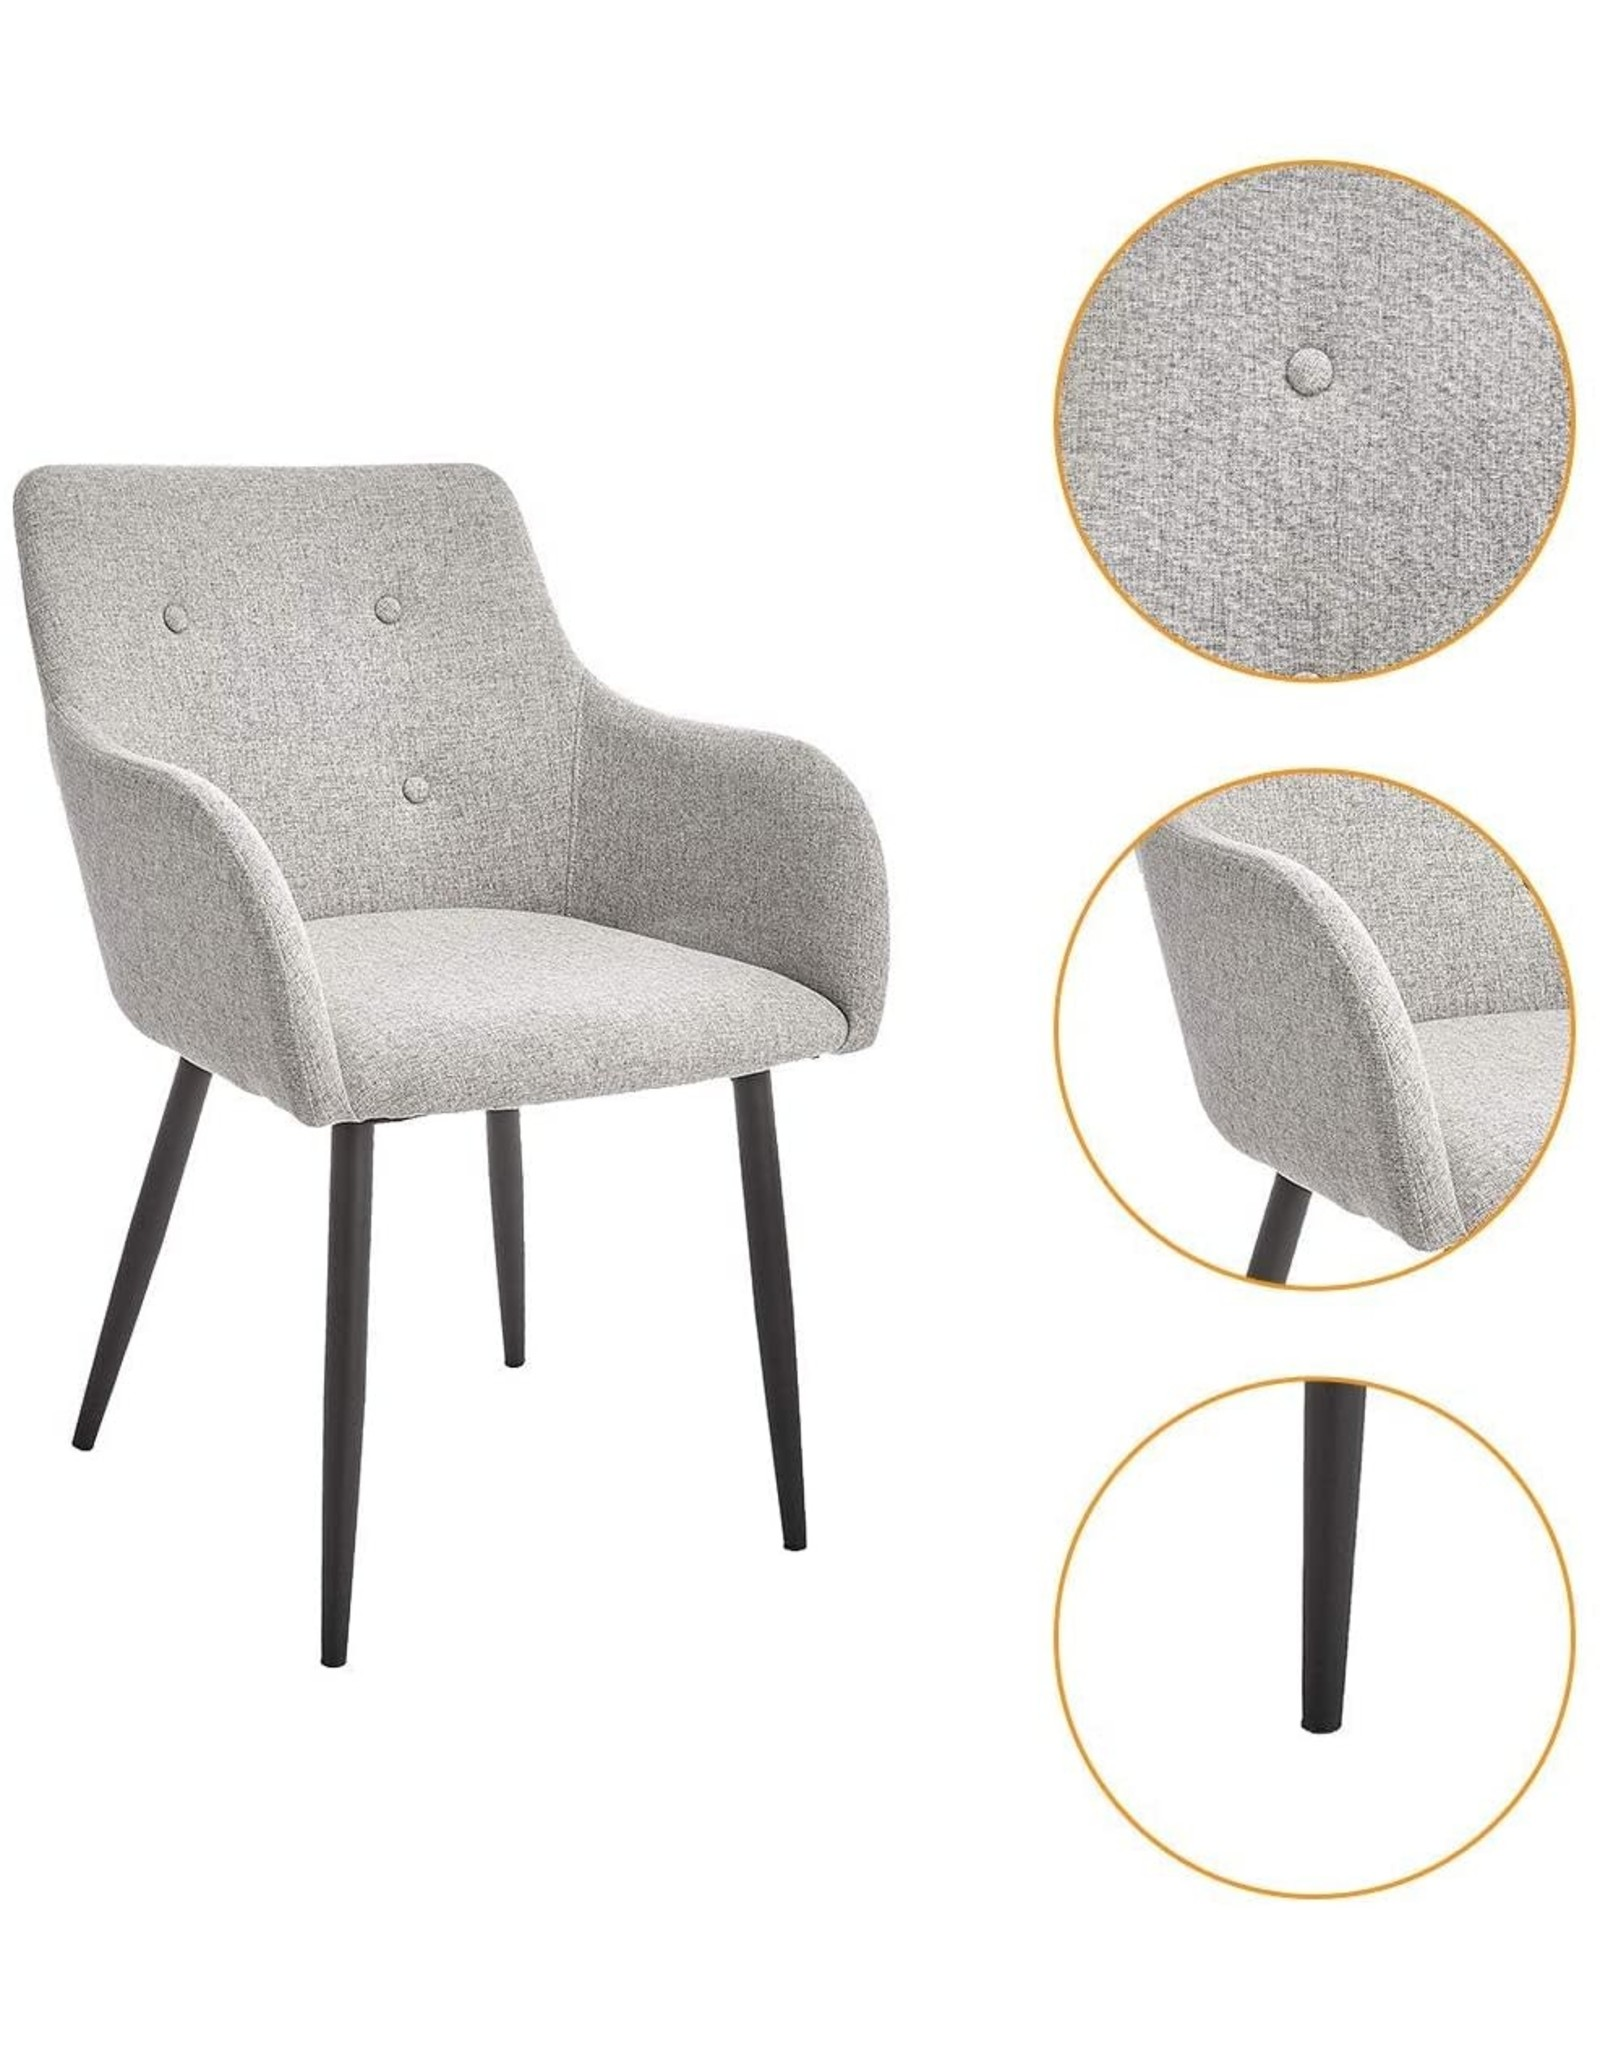 CangLong CangLong Leisure Chair Restaurant Back Sofa Office Furniture Casual Study Makeup Simple Home Adult Fabric Coffee Dining Room Fashion, Light Grey